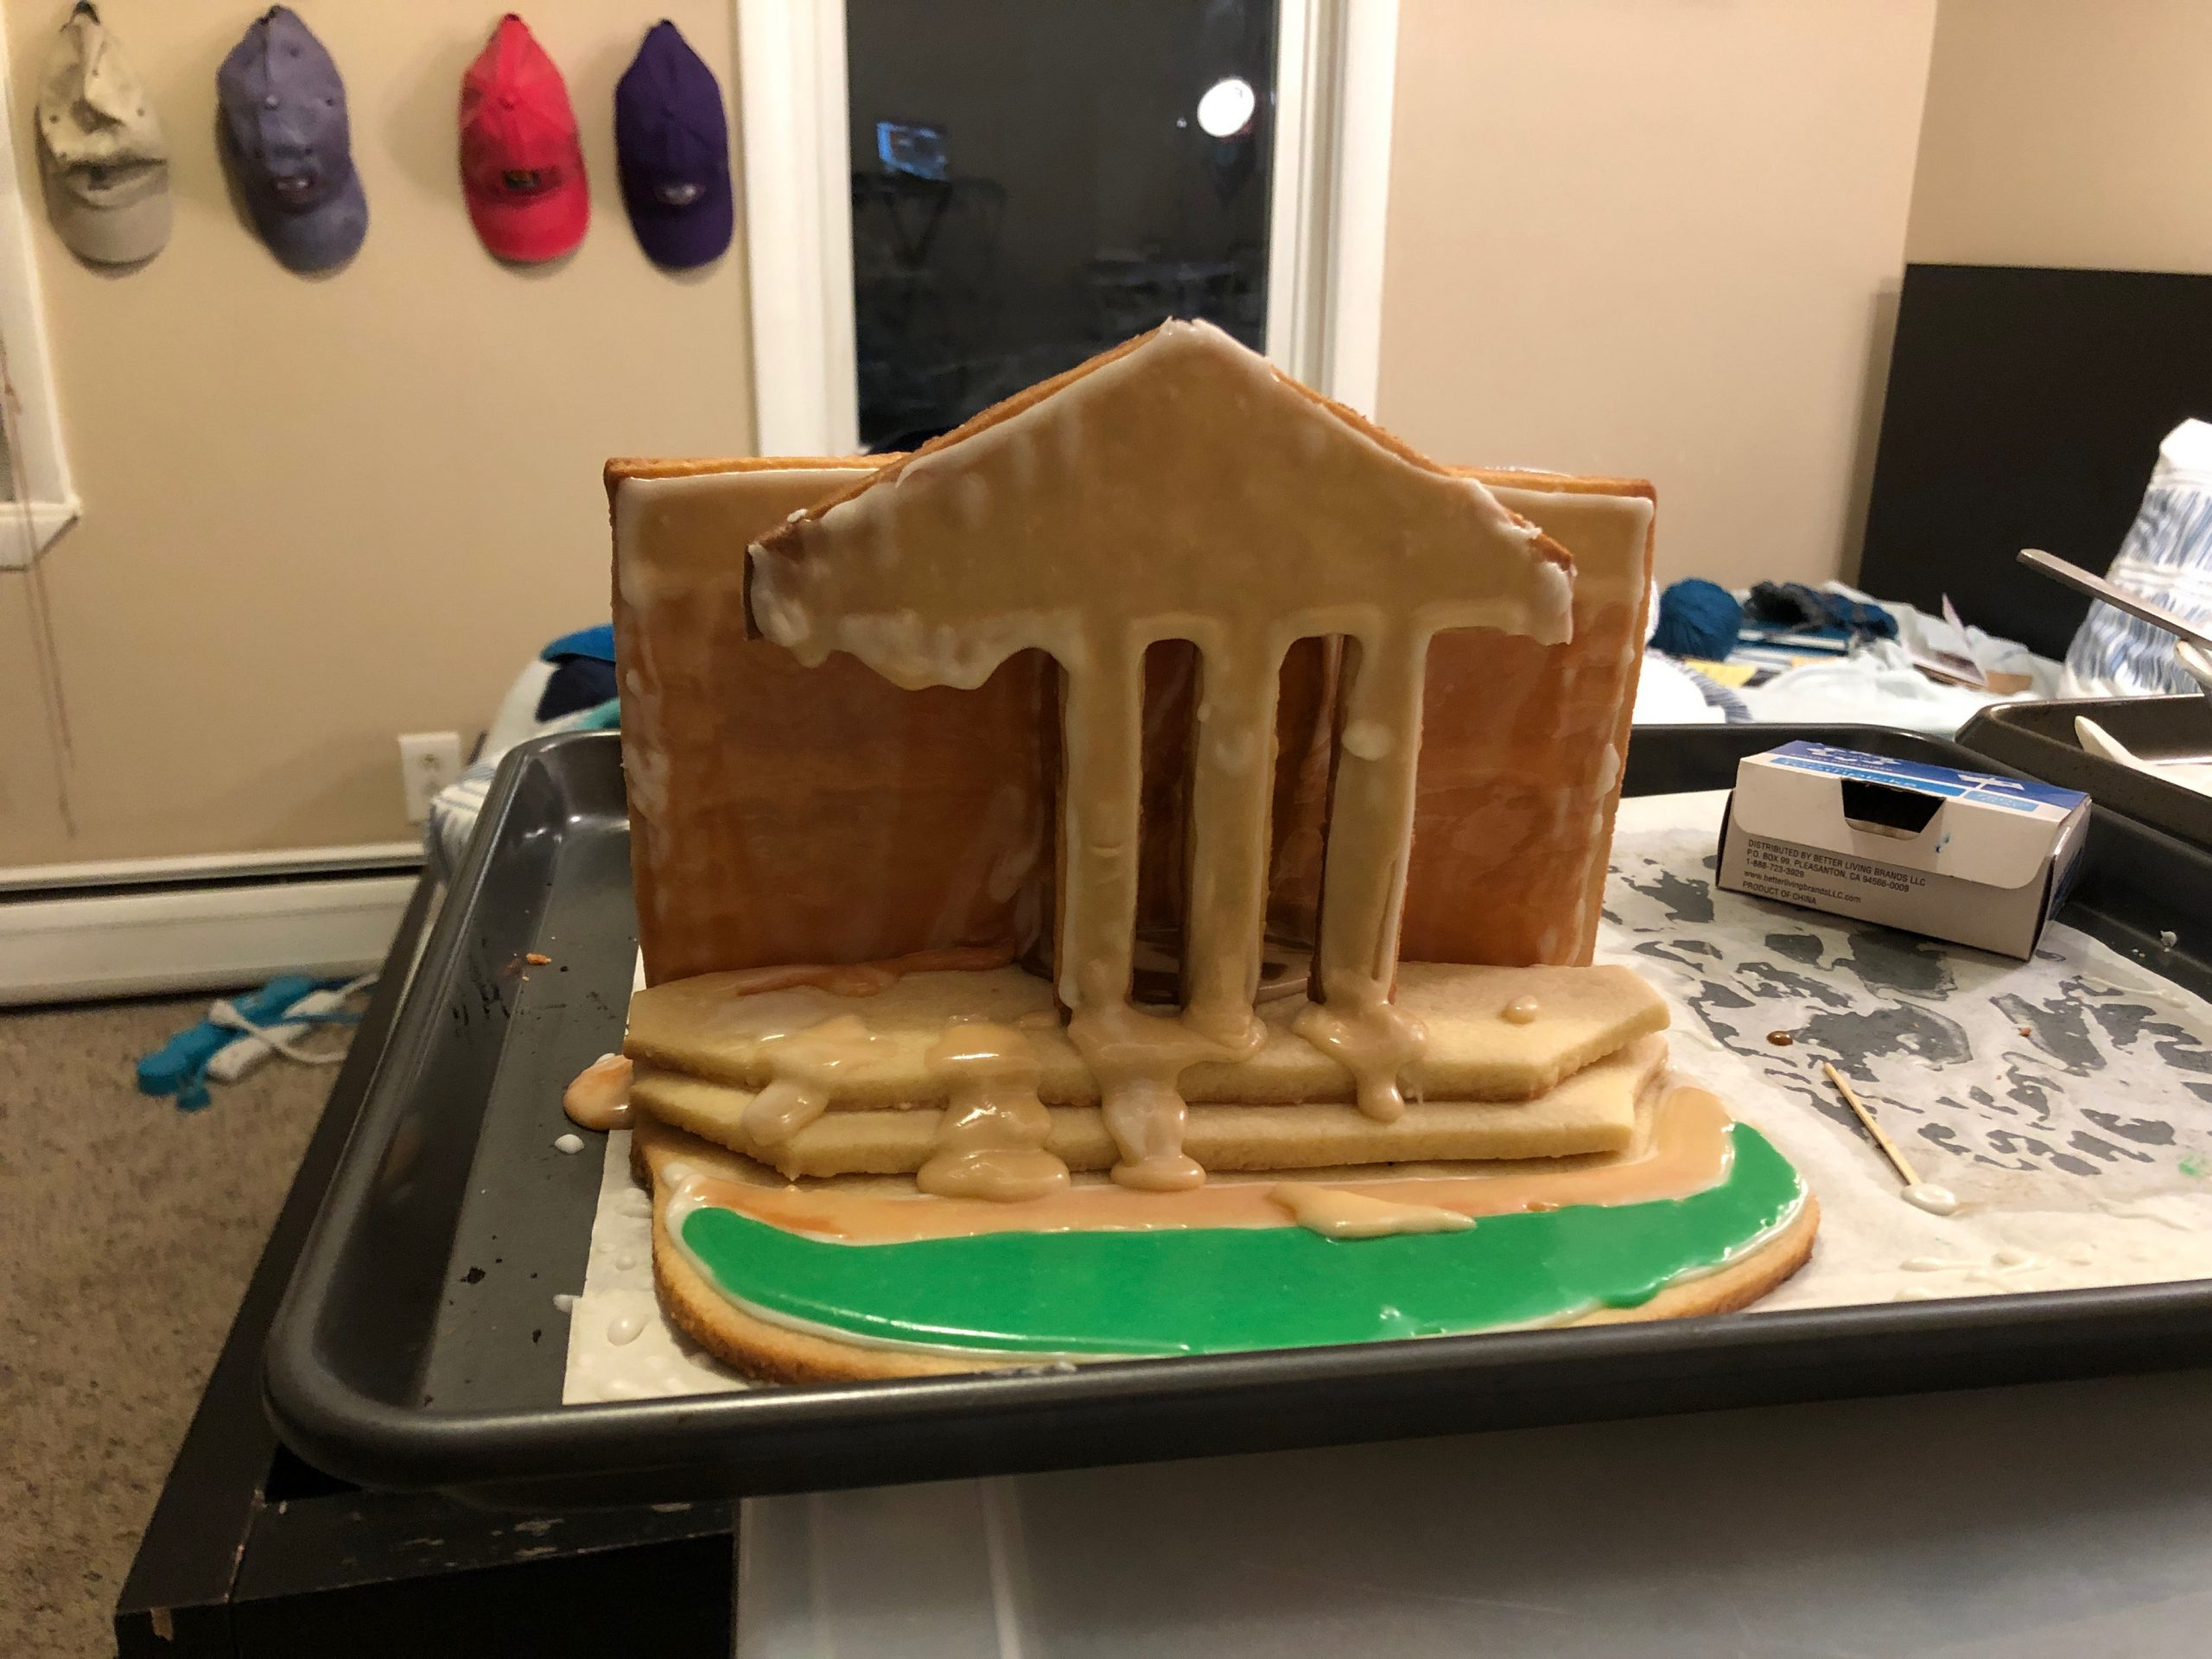 Chapin Hall in Gingerbread